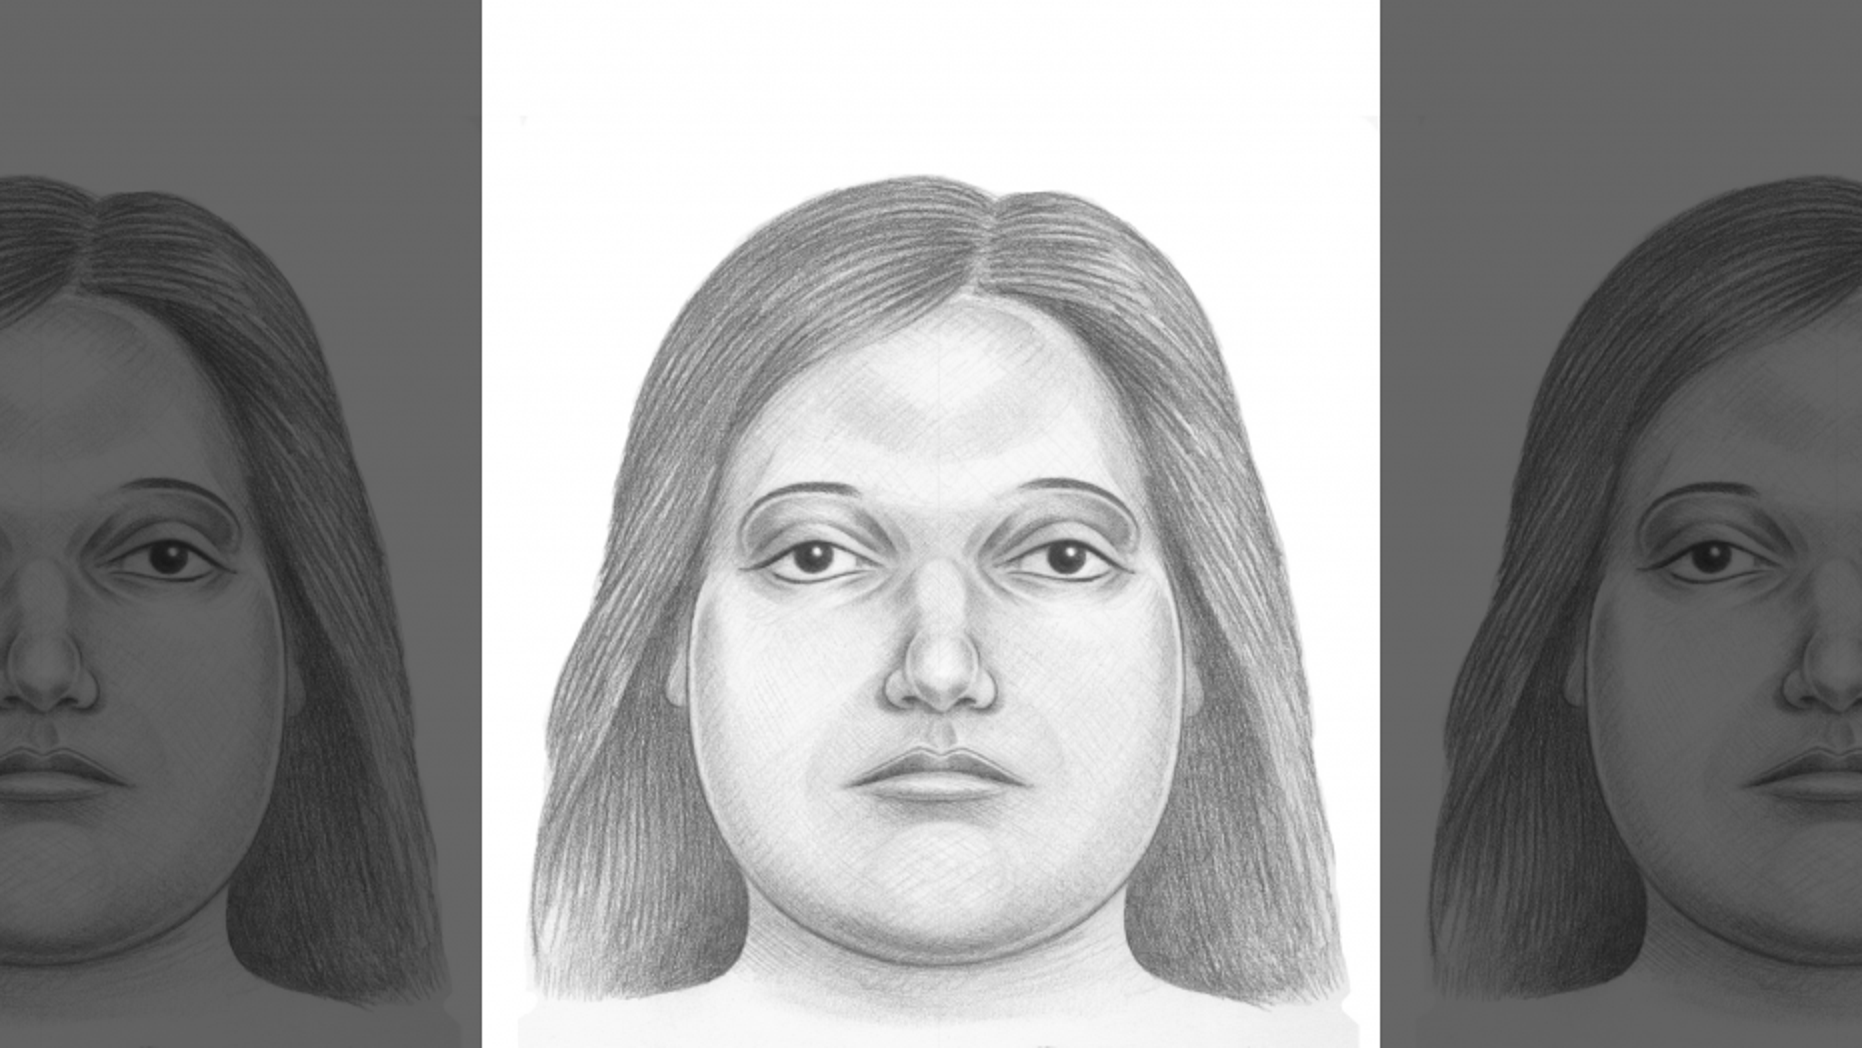 The New York City Police Department released the sketch of a woman whose body was found in bags at a park in the Bronx on Friday.